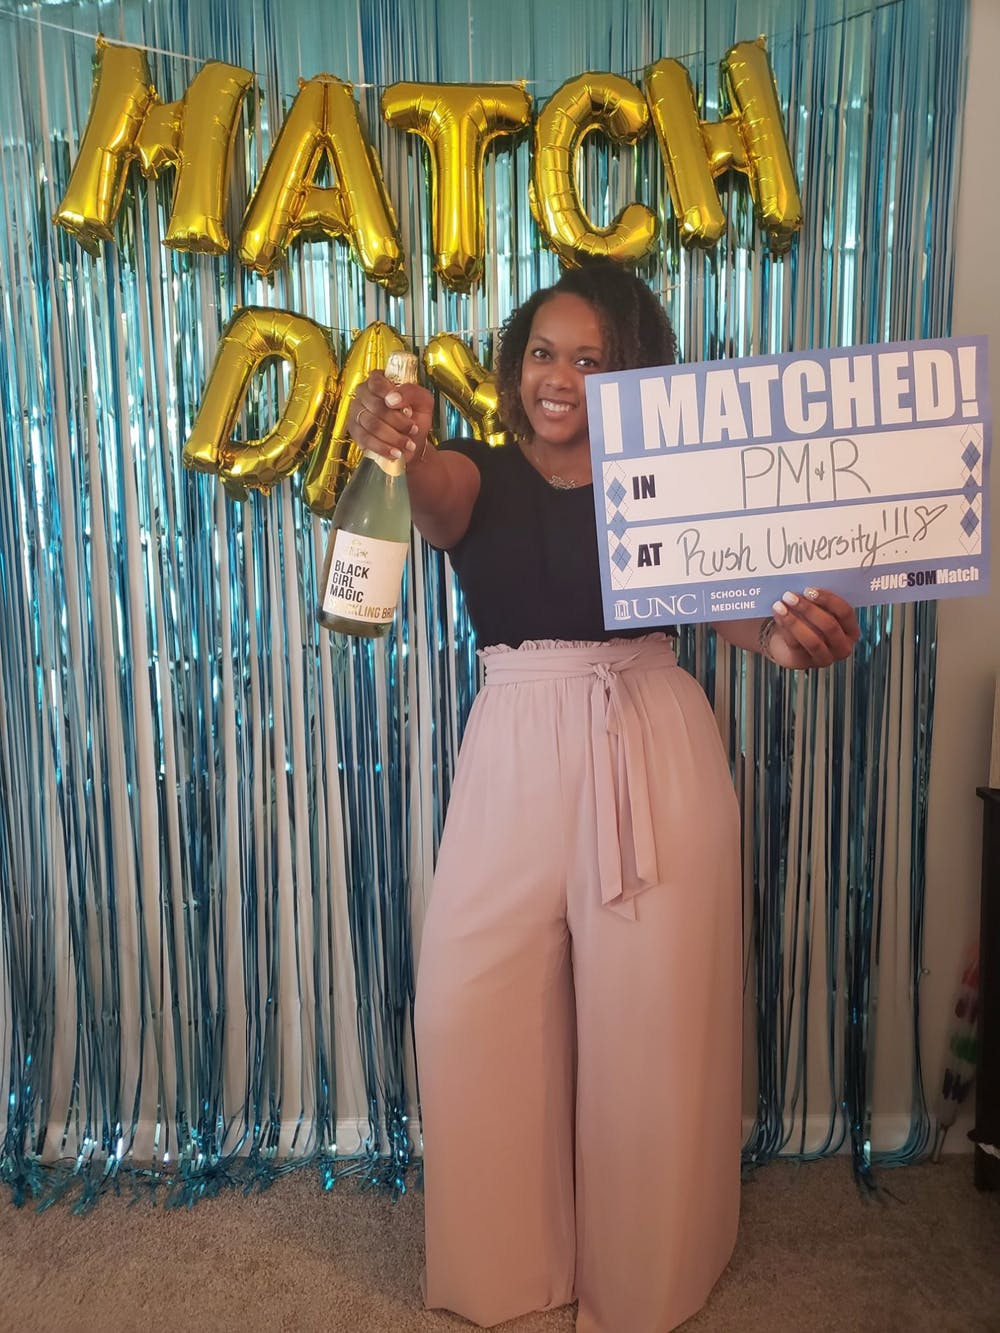 <p>Match day, when UNC medical students are paired with medical programs across the United States for residency and fellowship training, was March 19th. Tiffany Dyer matched with Rush University in Chicago. Photo courtesy of Tiffany Dyer.</p>